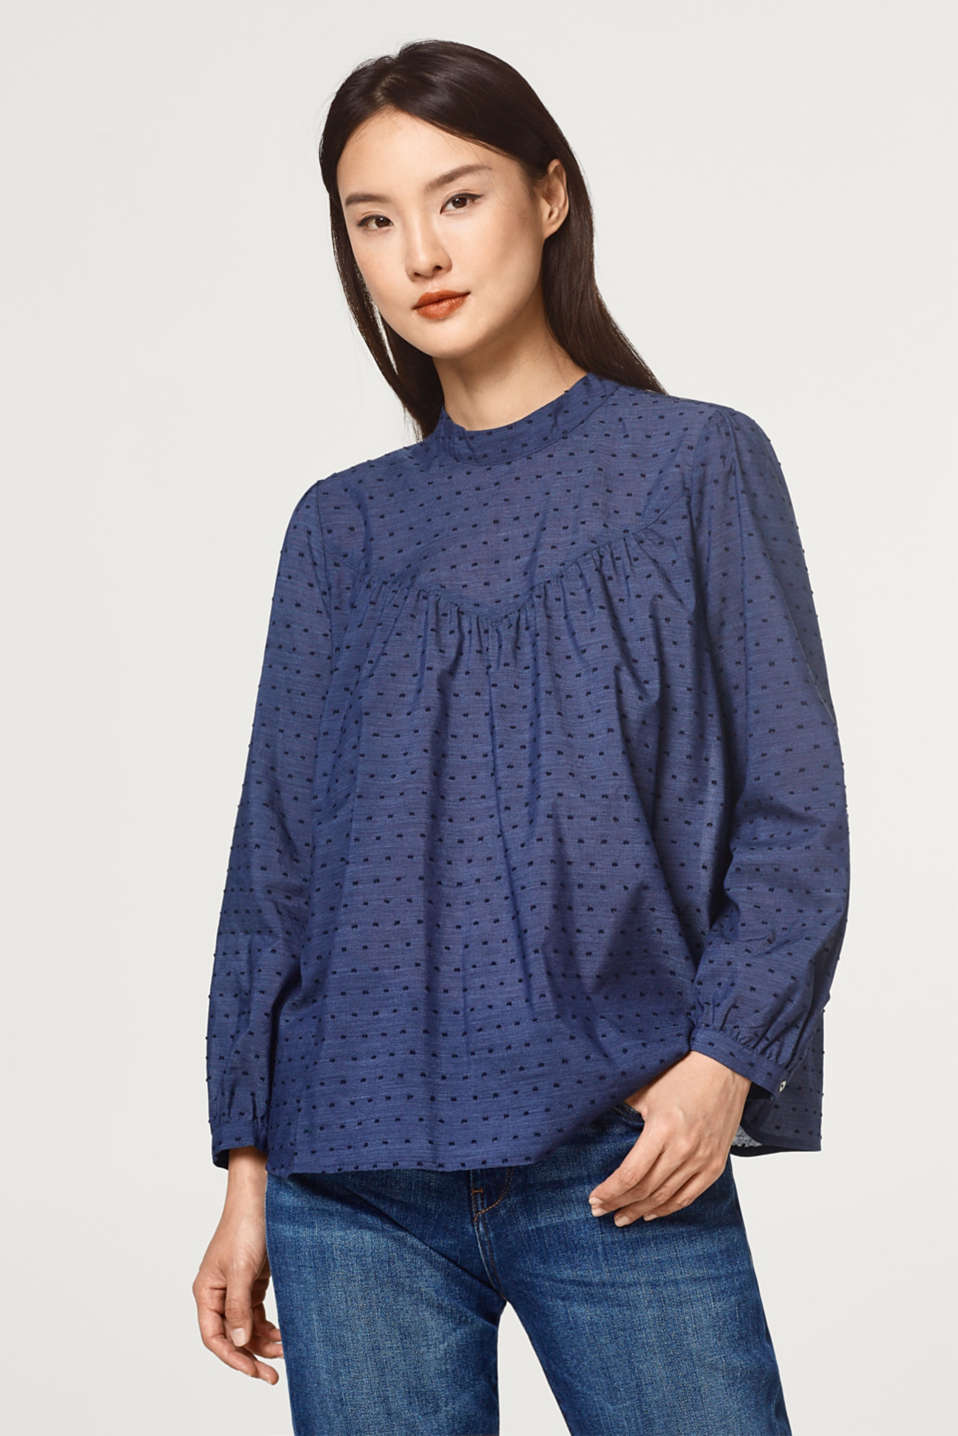 Esprit - Blouse with a band collar and woven polka dots